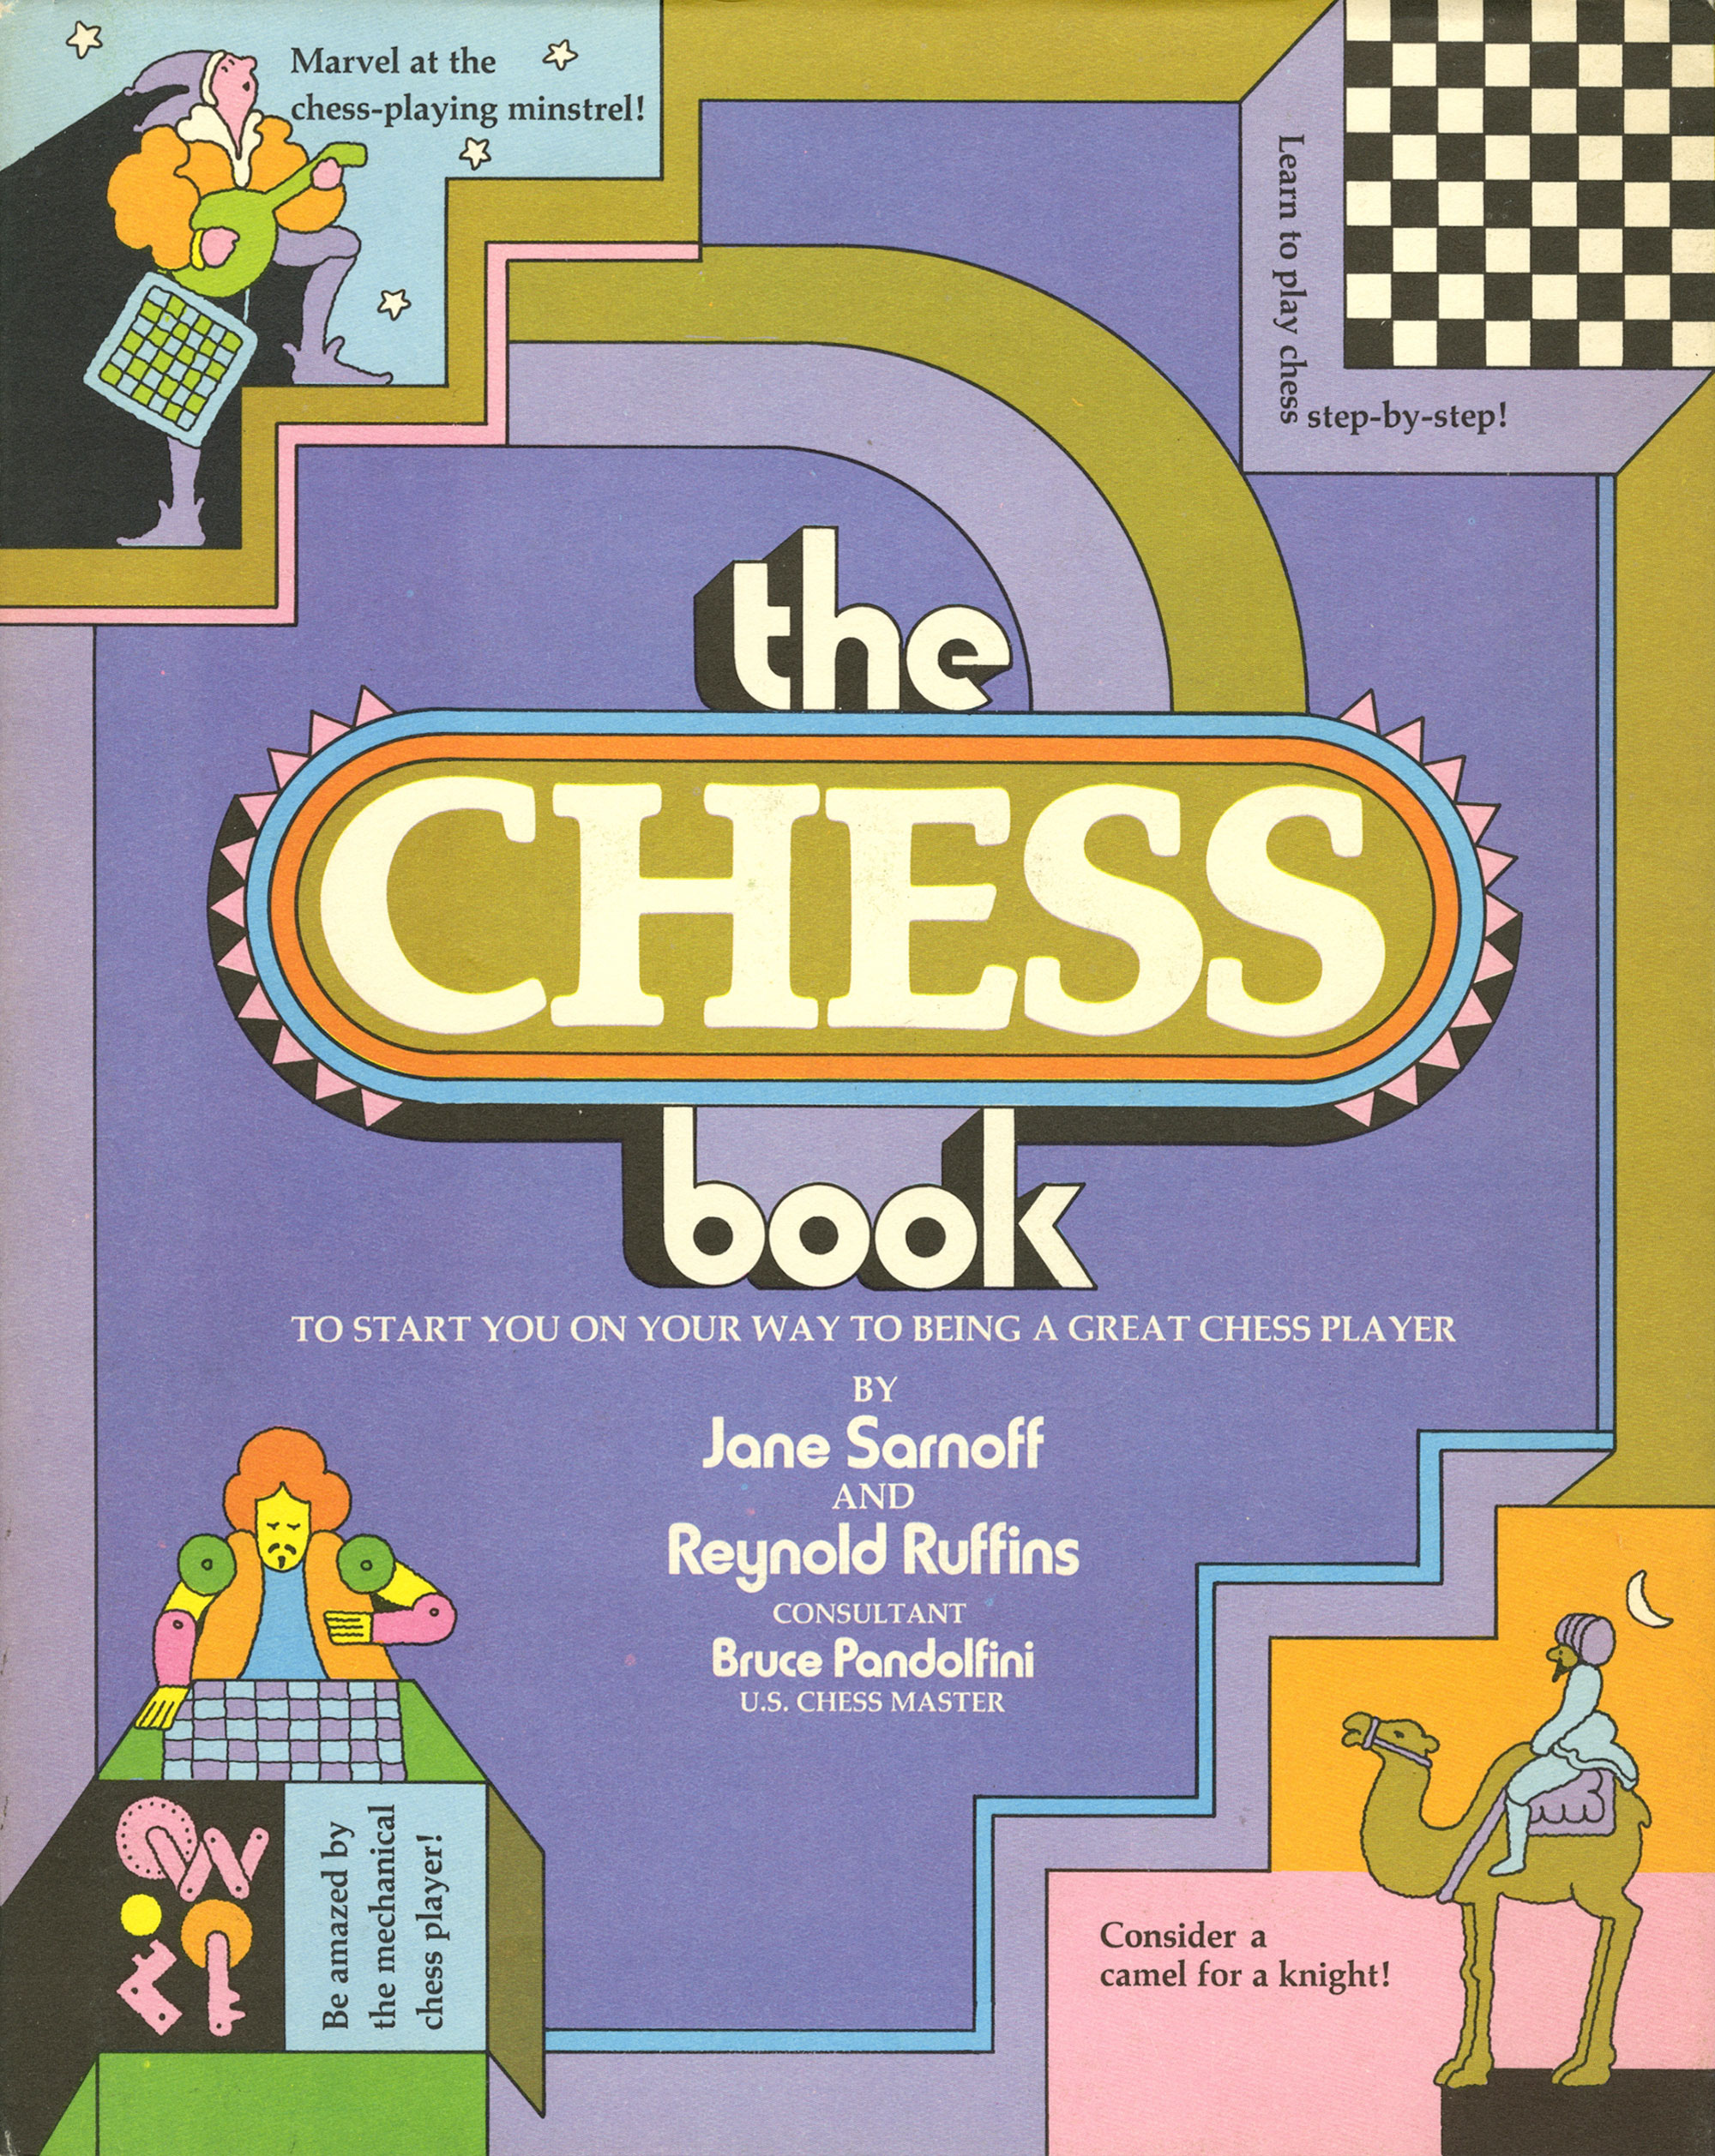 THE CHESS BOOK